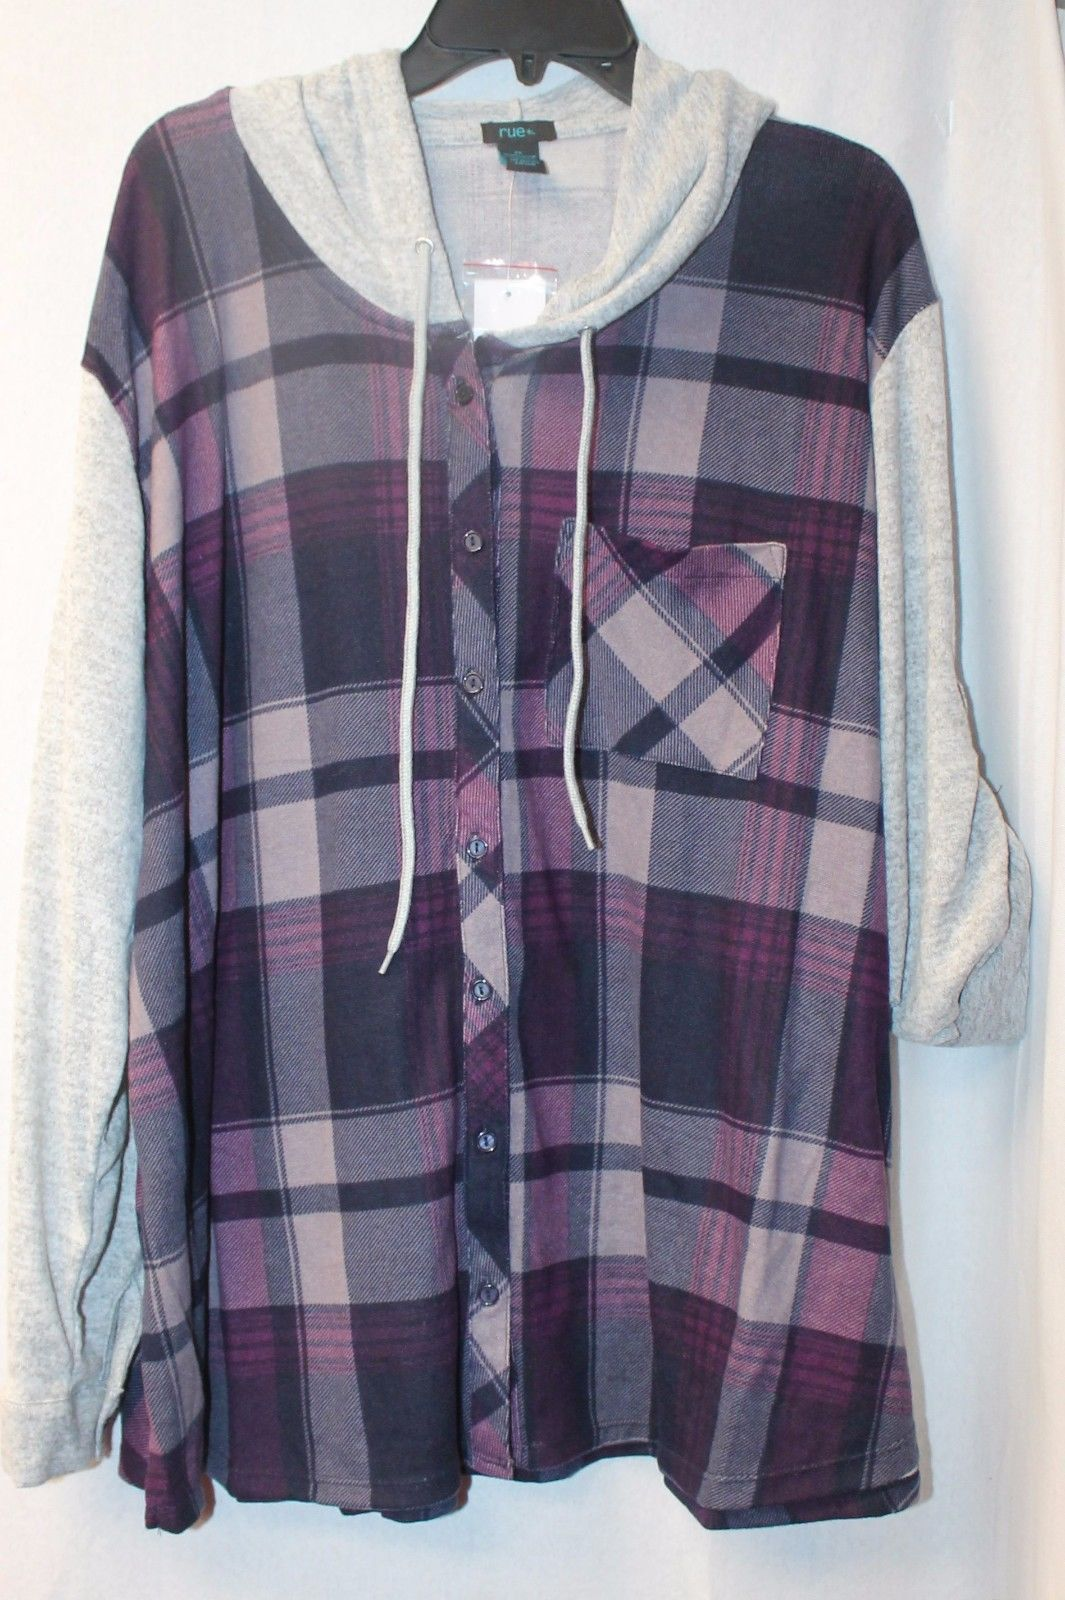 Primary image for NEW WOMENS PLUS SIZE 3X PURPLE PLAID HOODED SOFT HACCI BLOCKED SHIRT HOODIE